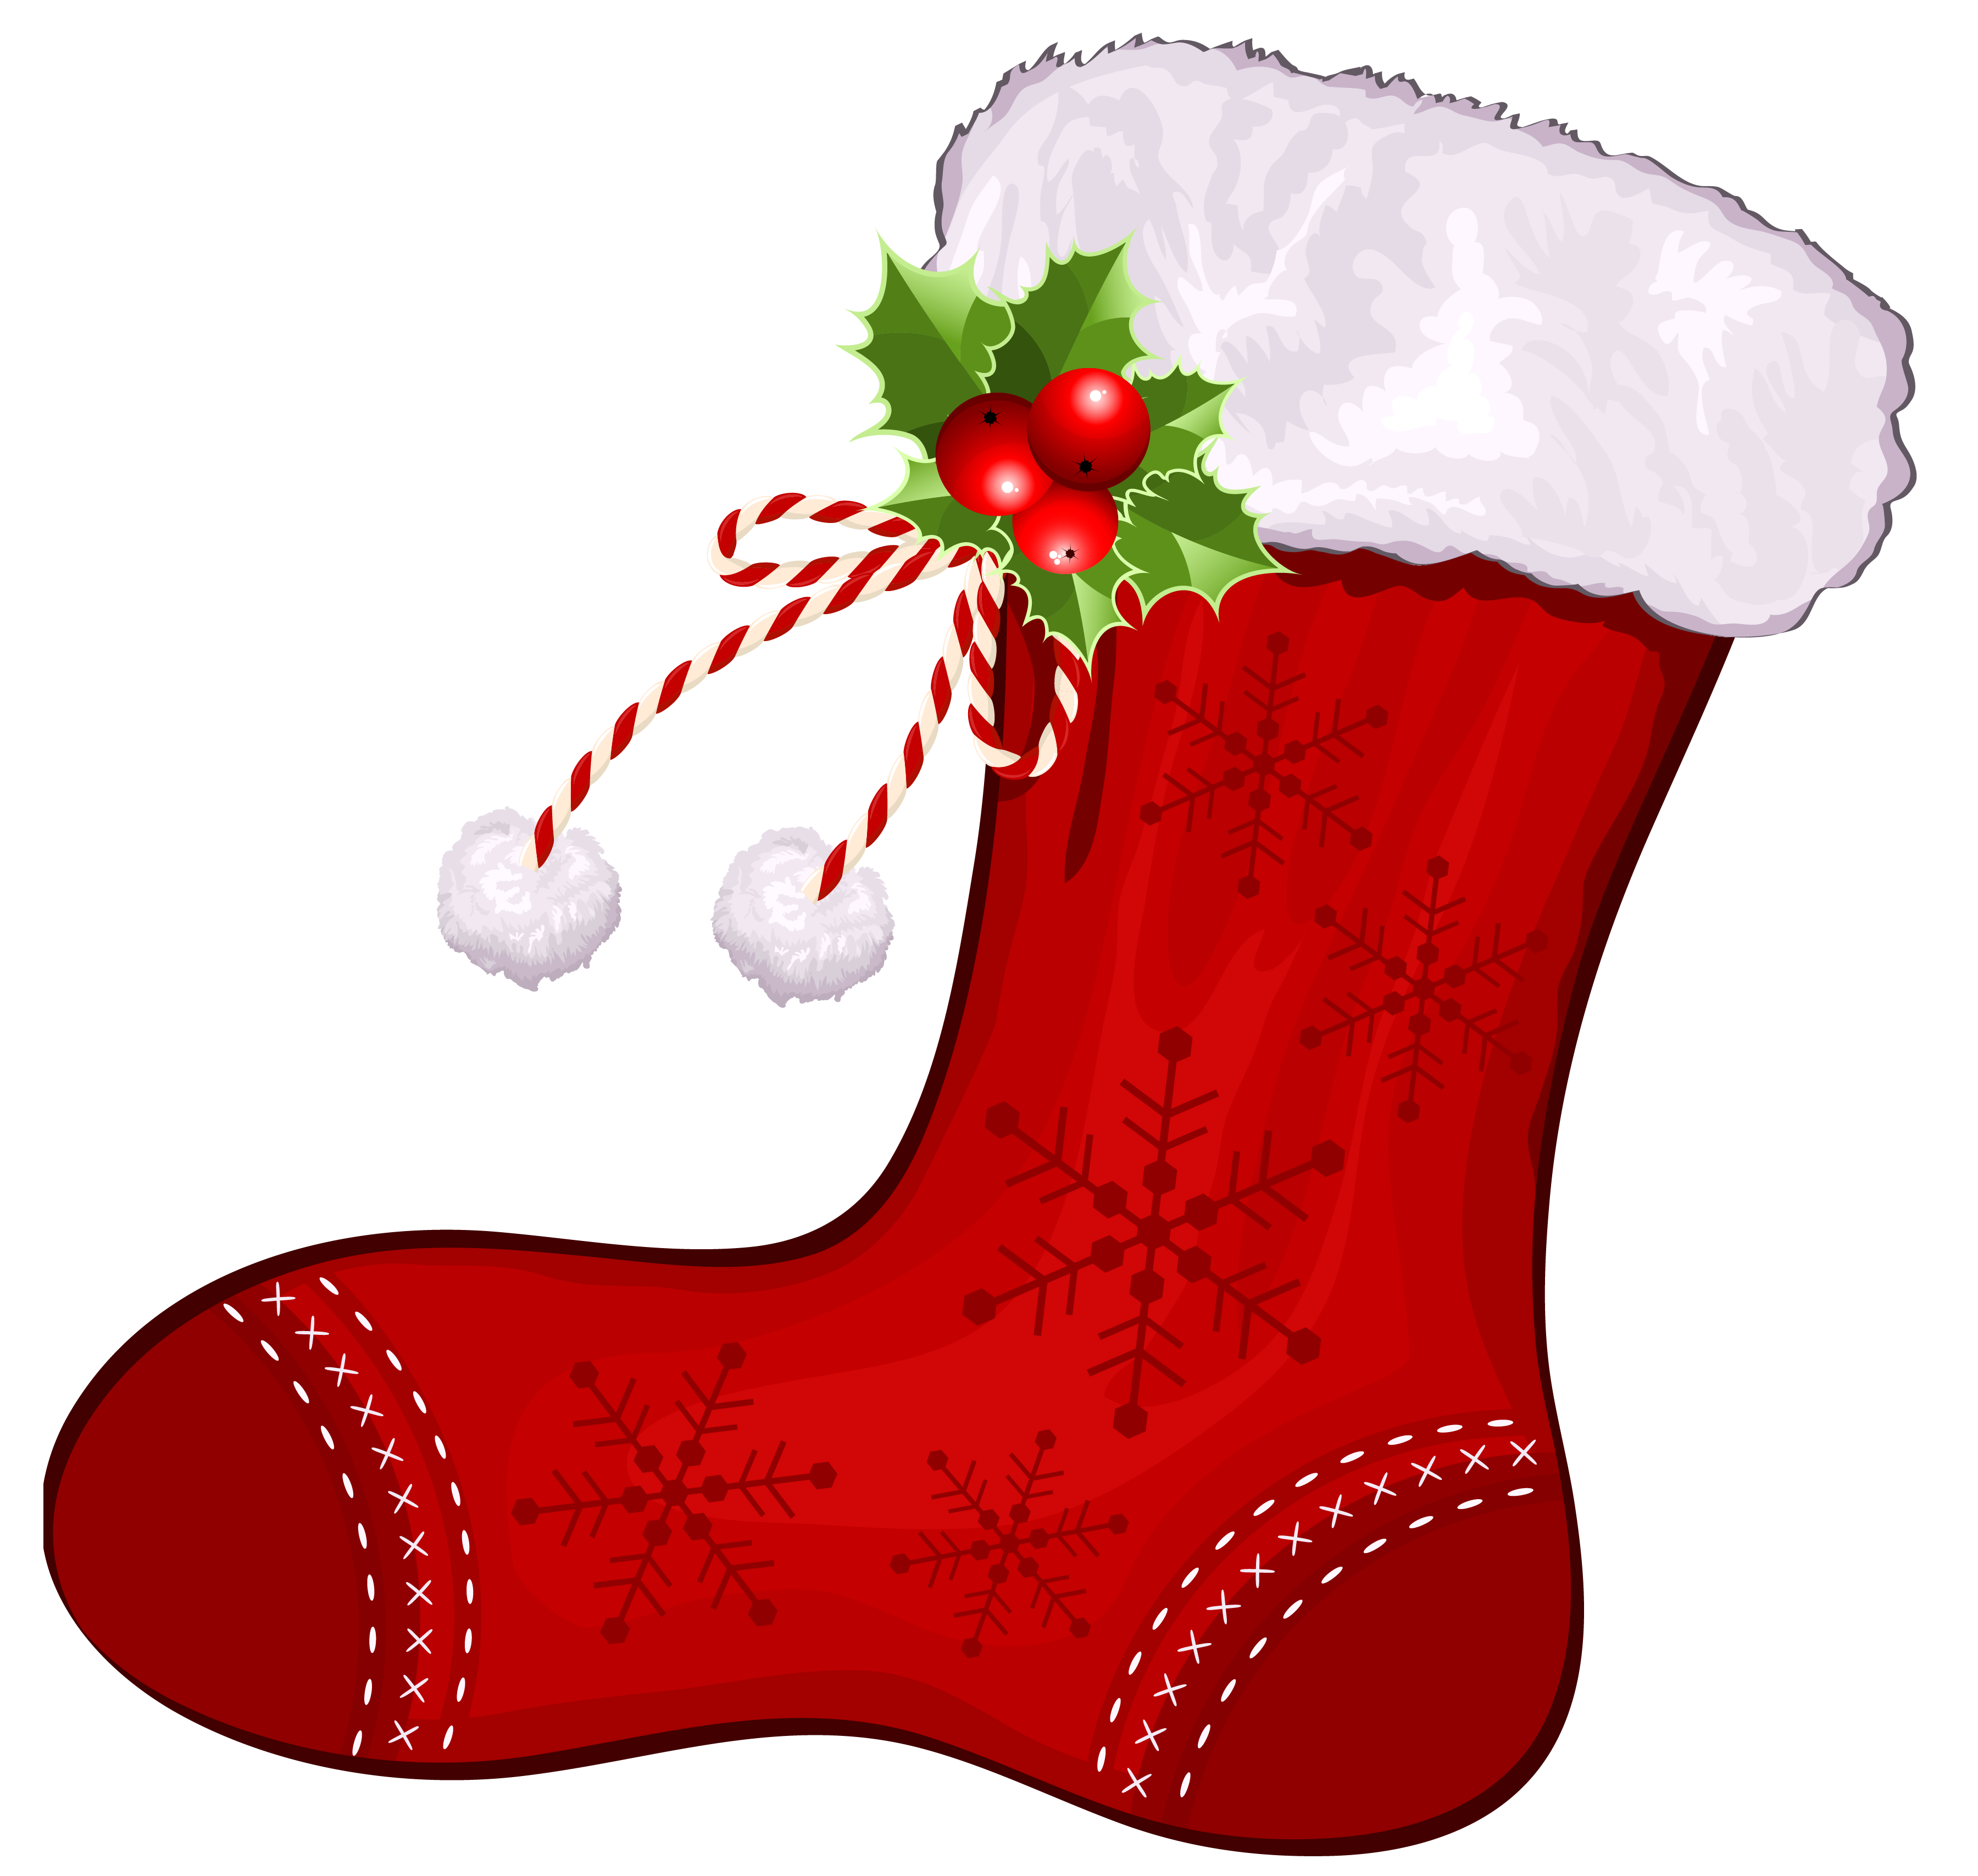 christmas stocking images clipart best christmas stocking clipart free christmas stockings clipart black and white